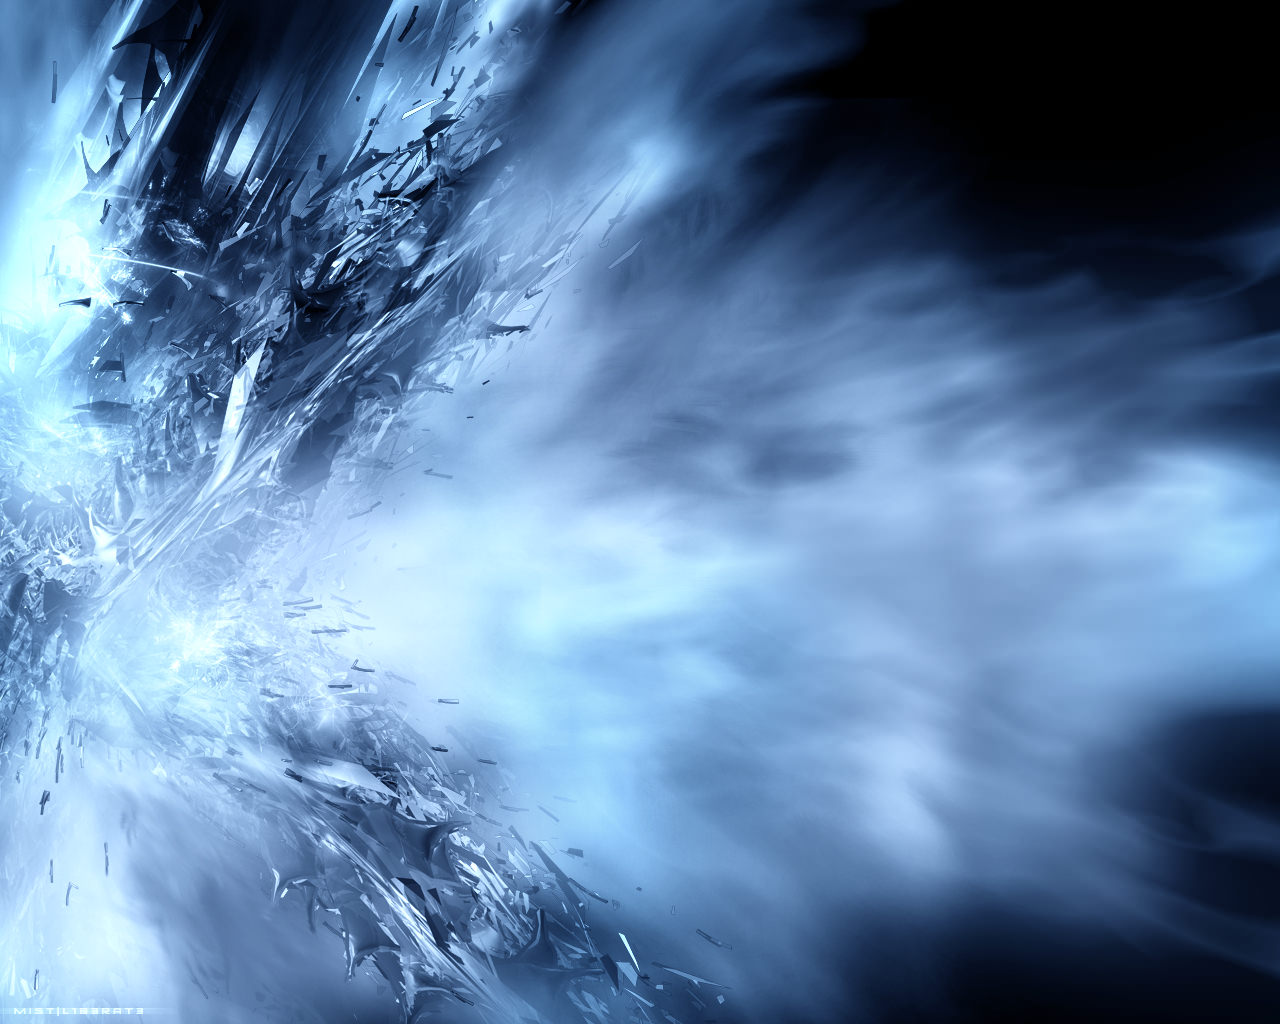 Abstract Blue Artistic Wallpaper